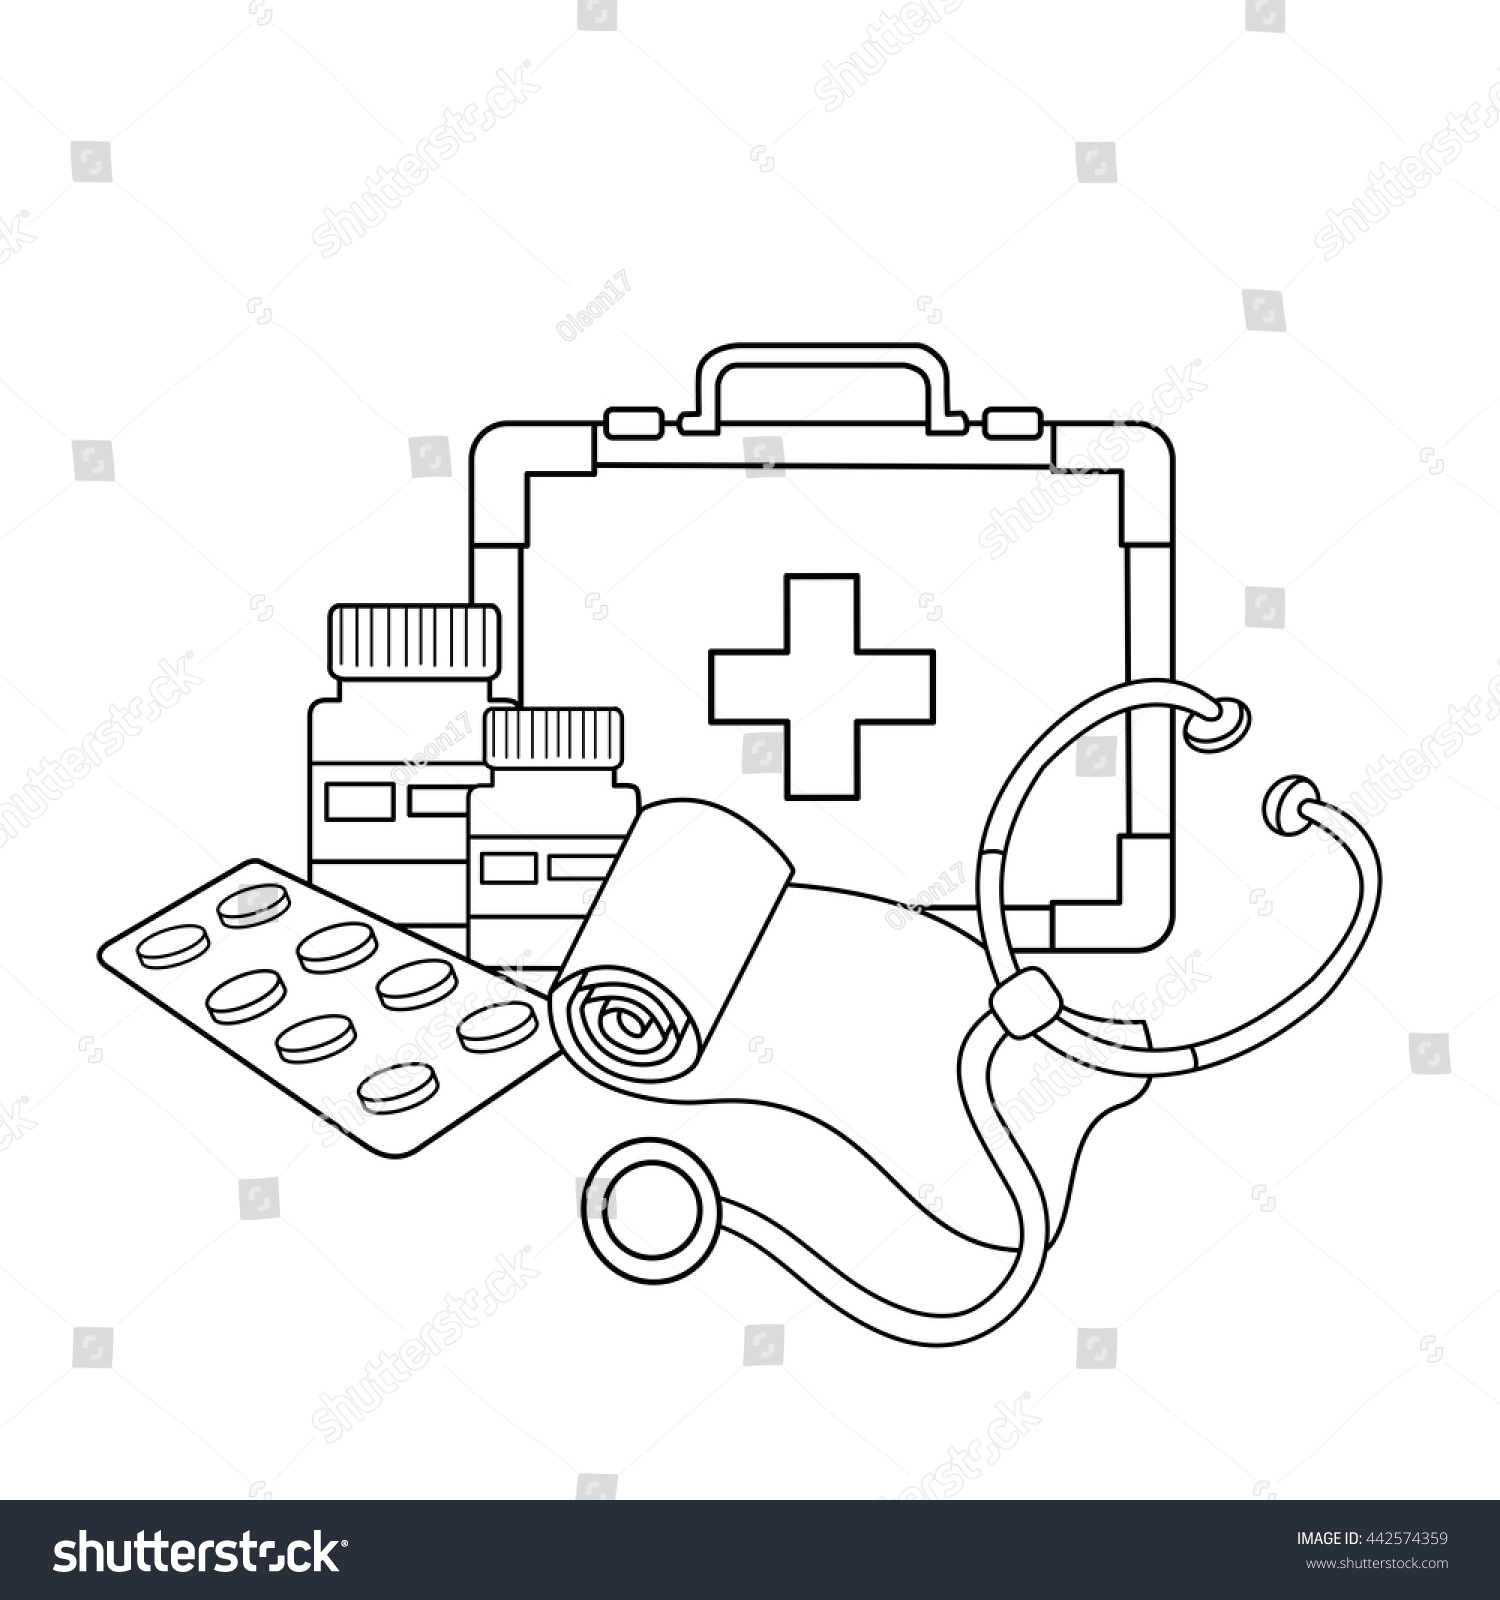 Medical Instruments Coloring Pages